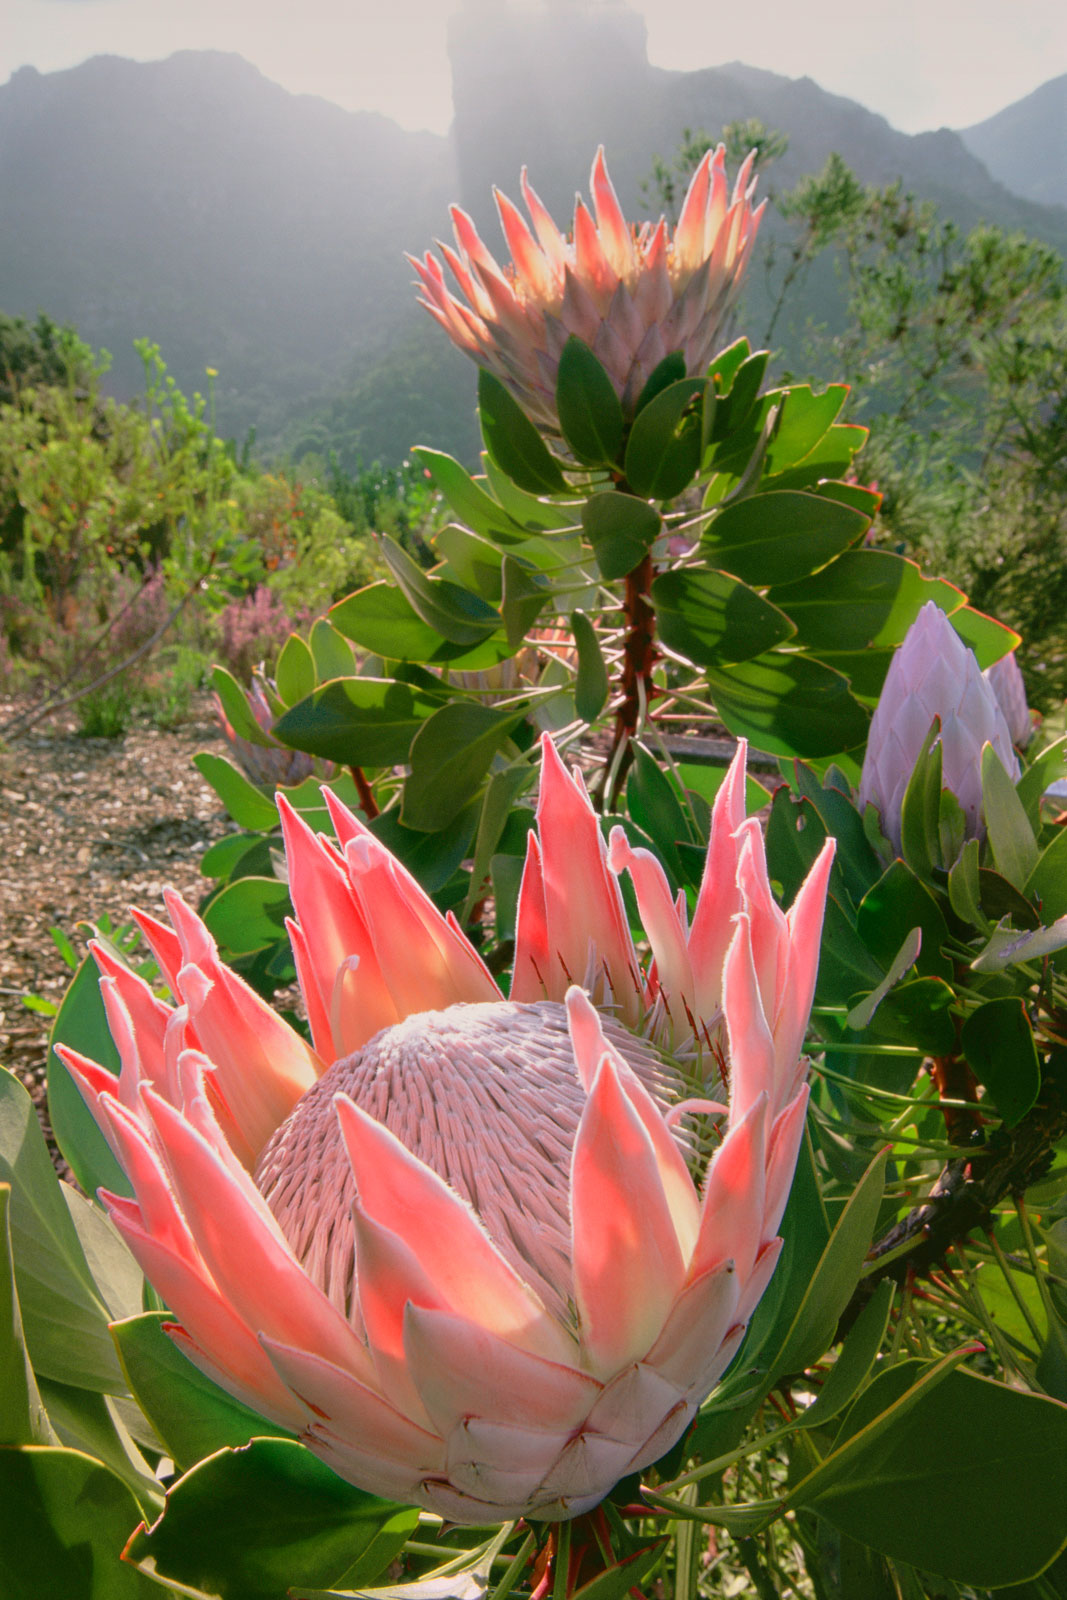 King protea, Kirstenbosch National Botanical Garden, Cape Town, South Africa